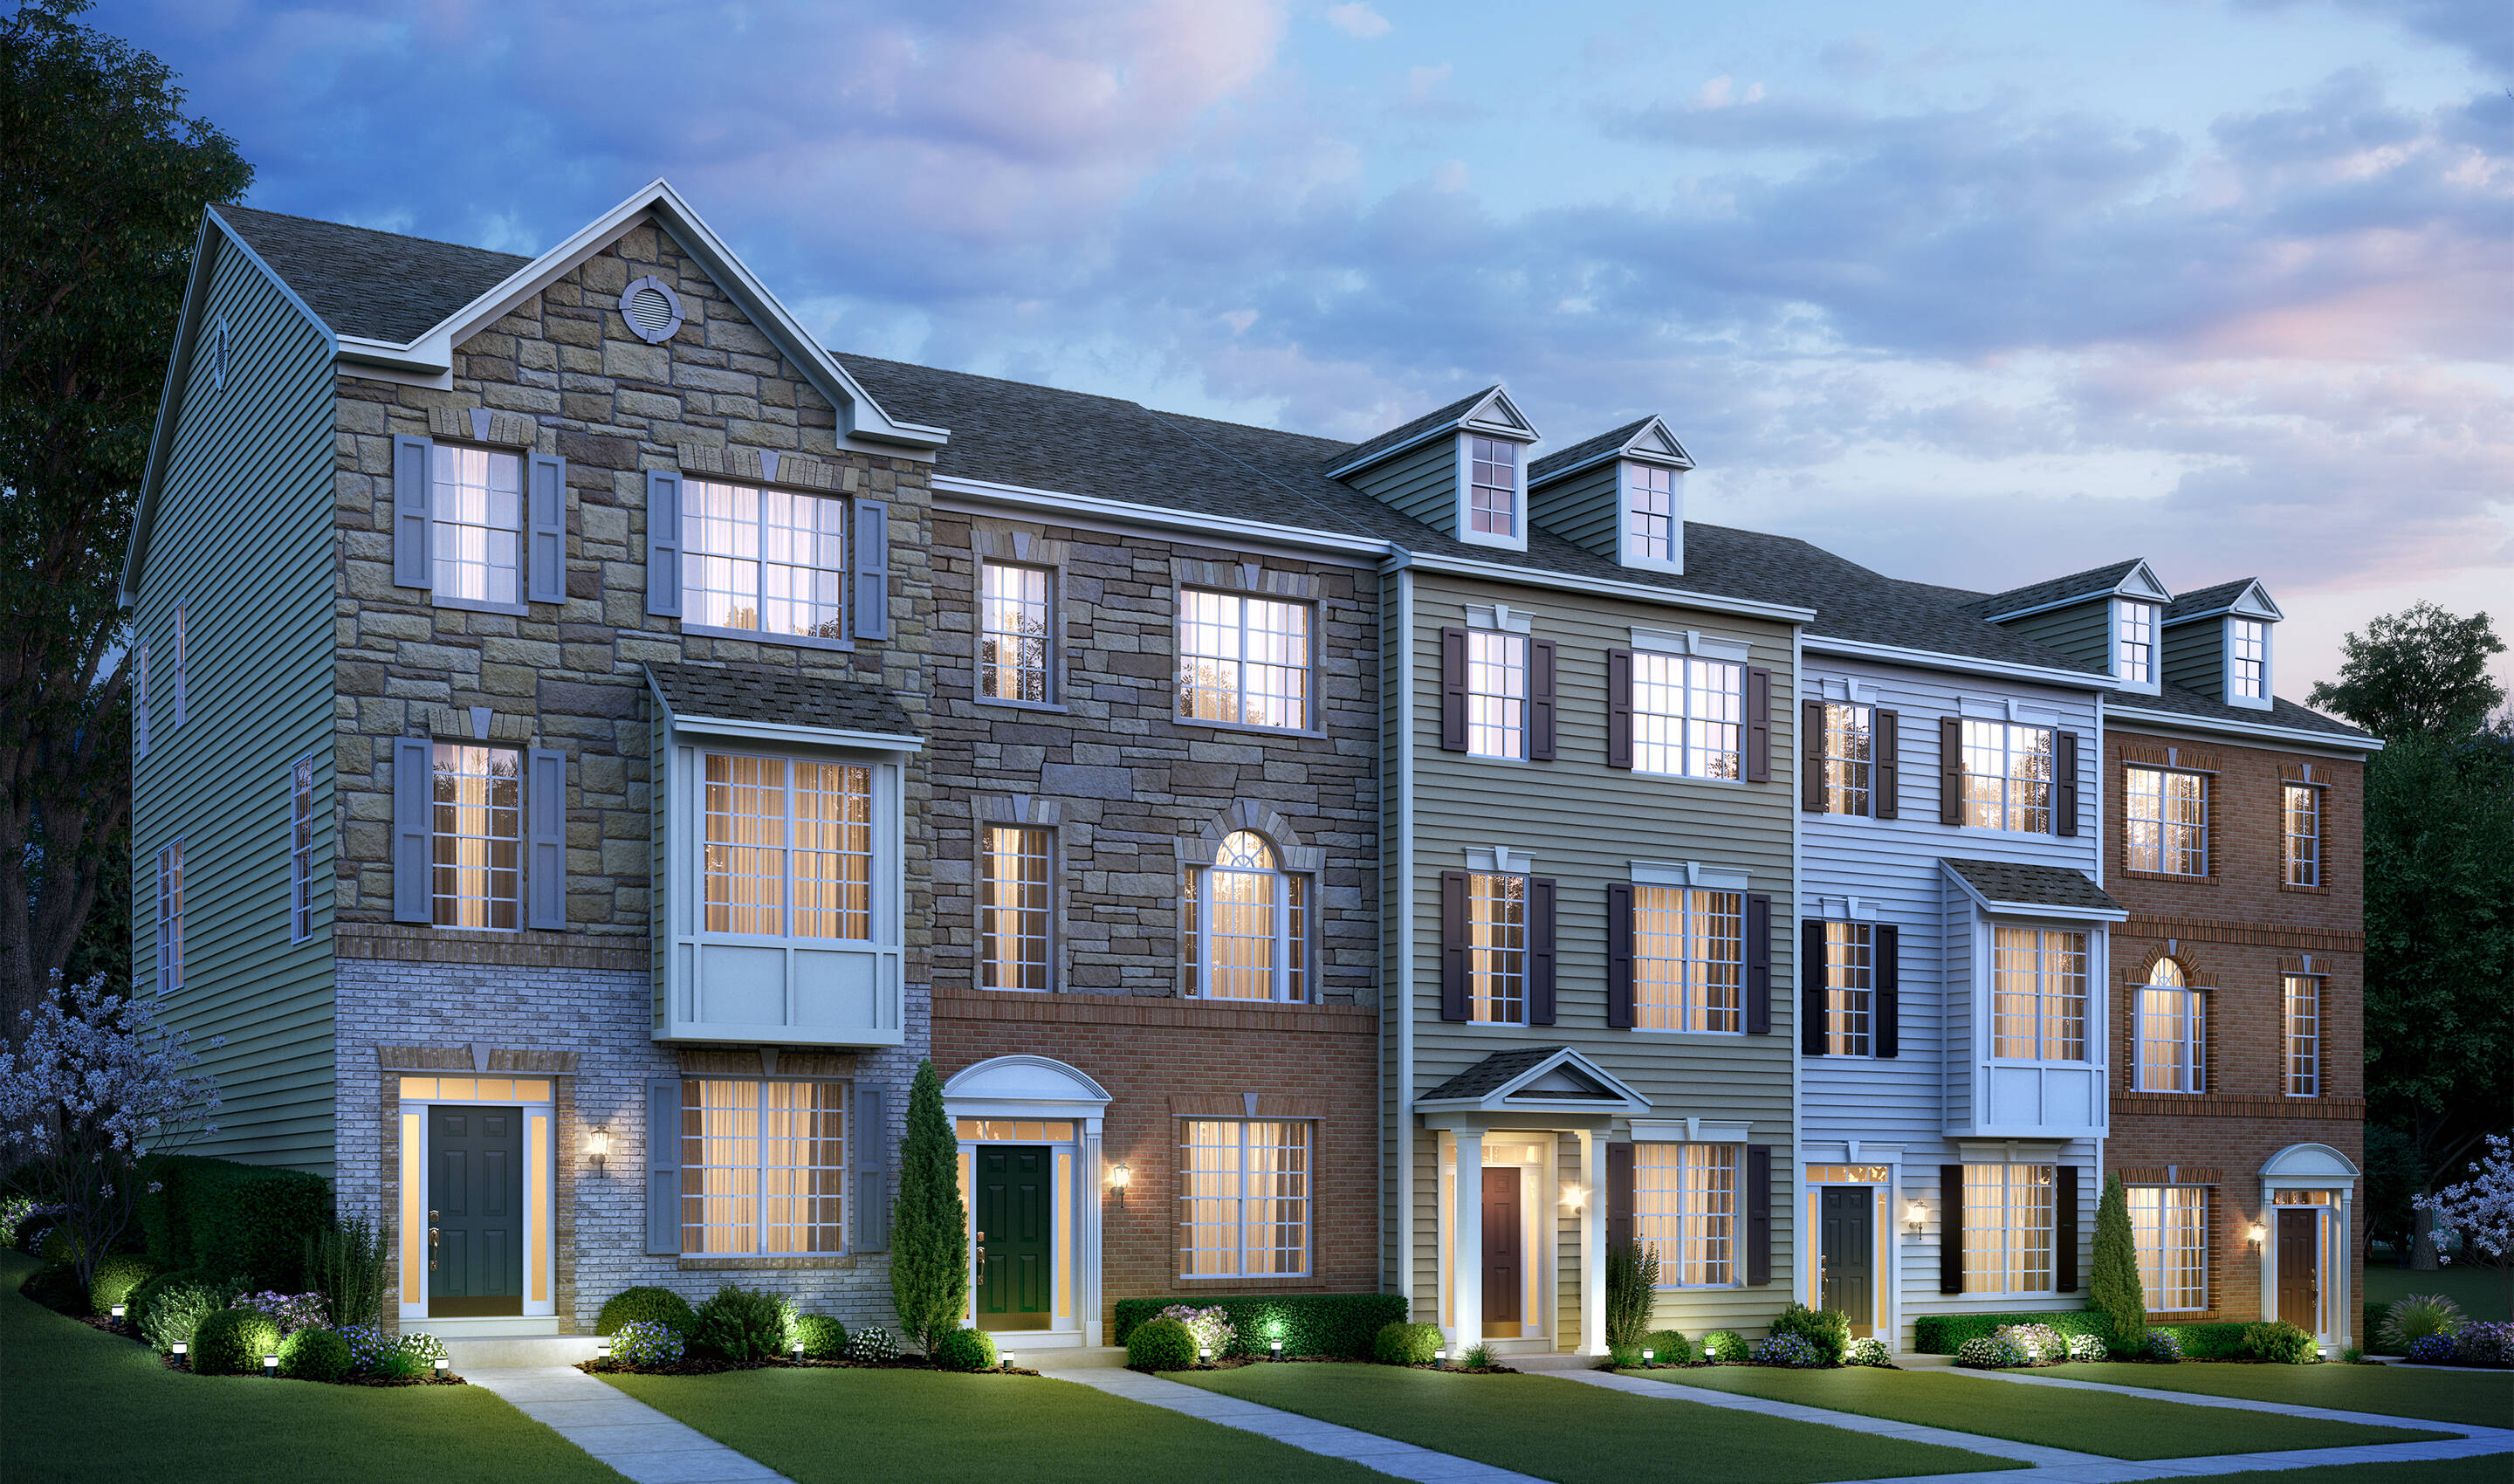 pierce III 5 th new homes at kensington overlook in maryland